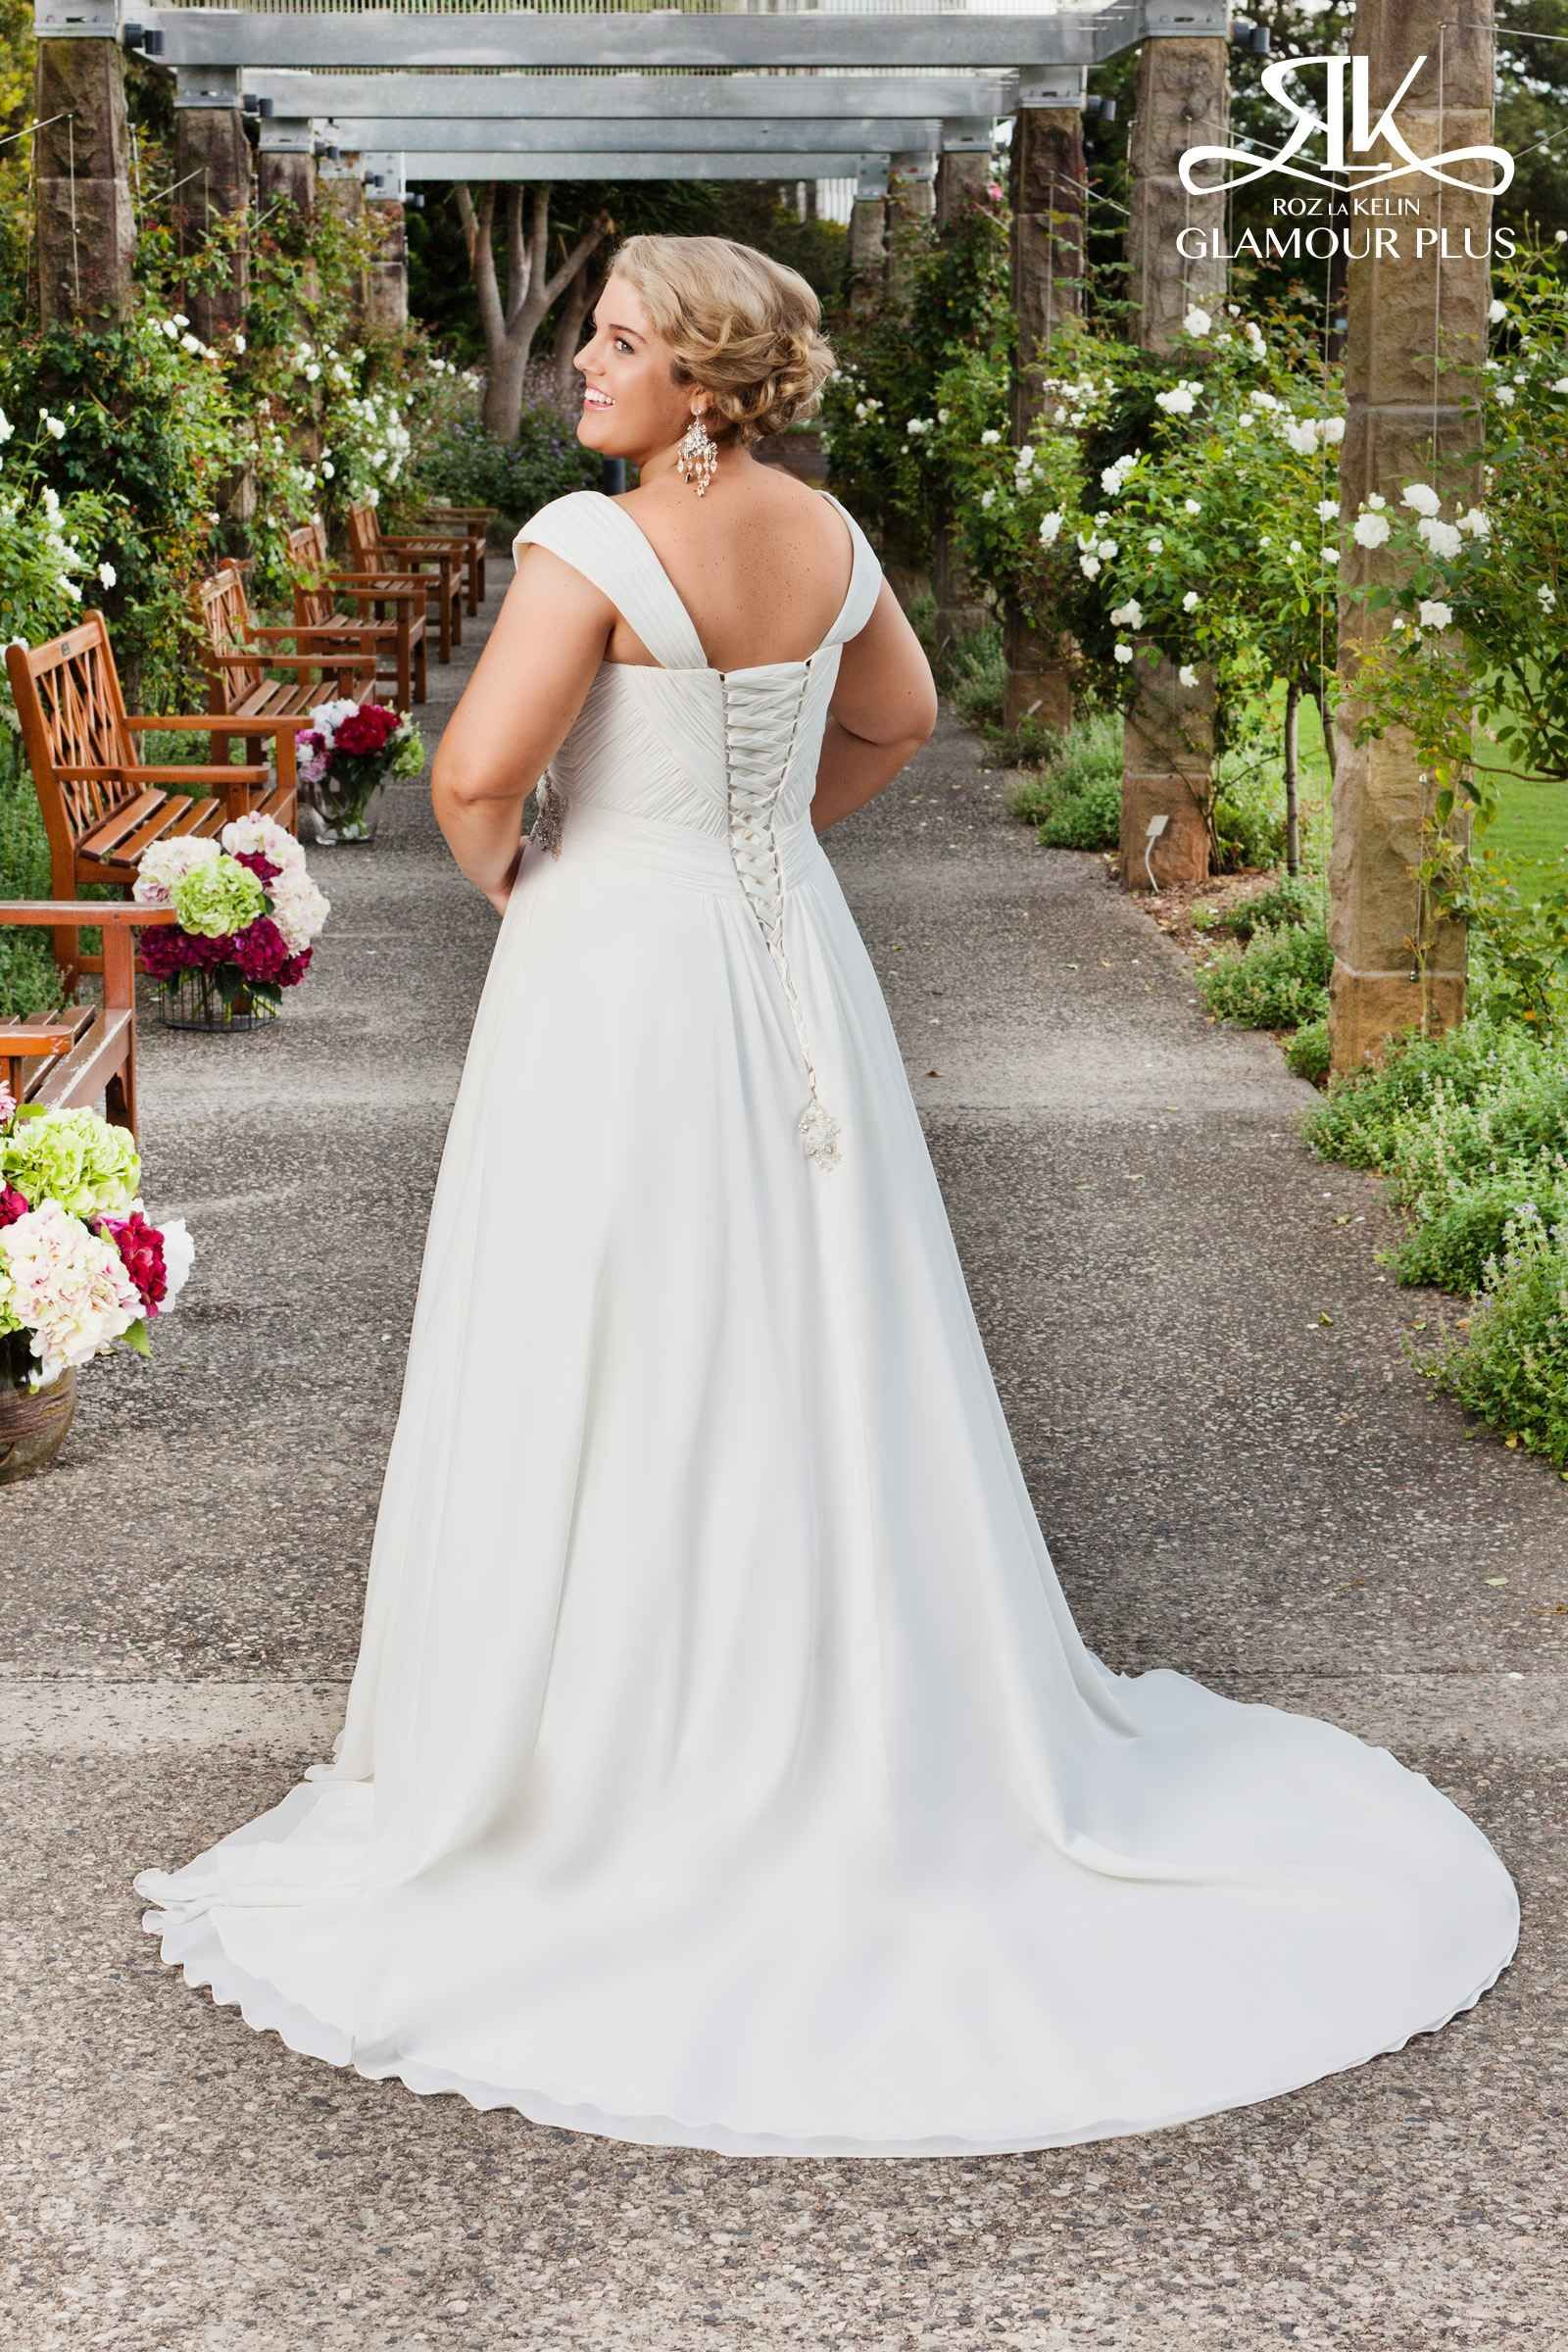 Top 10 plus size wedding dress designers by pretty pear bride top 10 plus size wedding dress designers by pretty pear bride ombrellifo Images